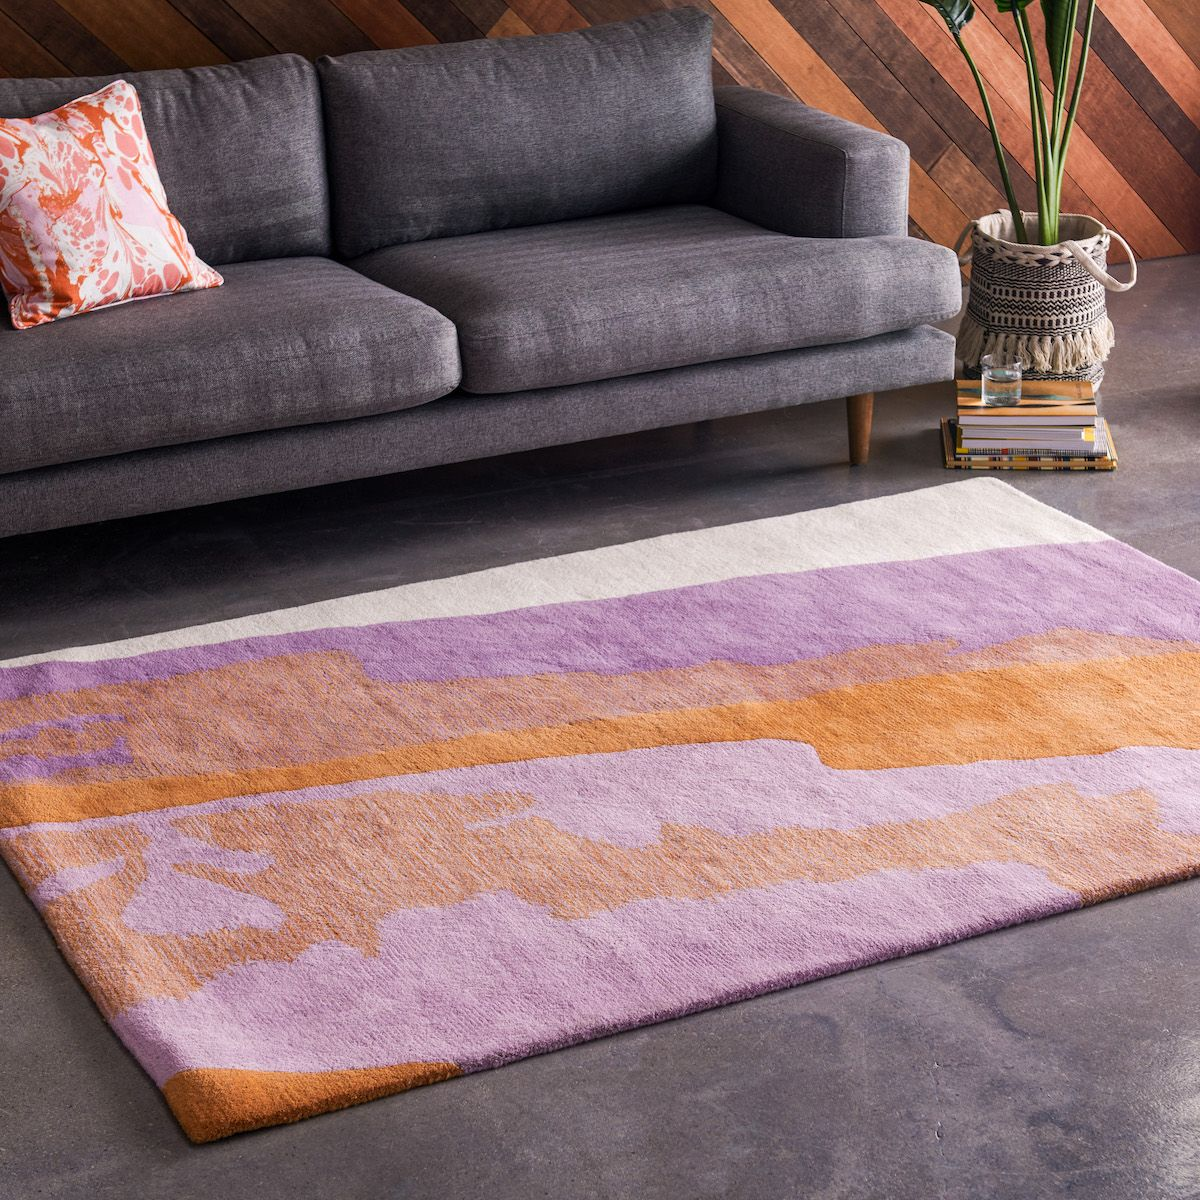 10 Best Places To Buy Cheap Rugs In 2020 Stylish